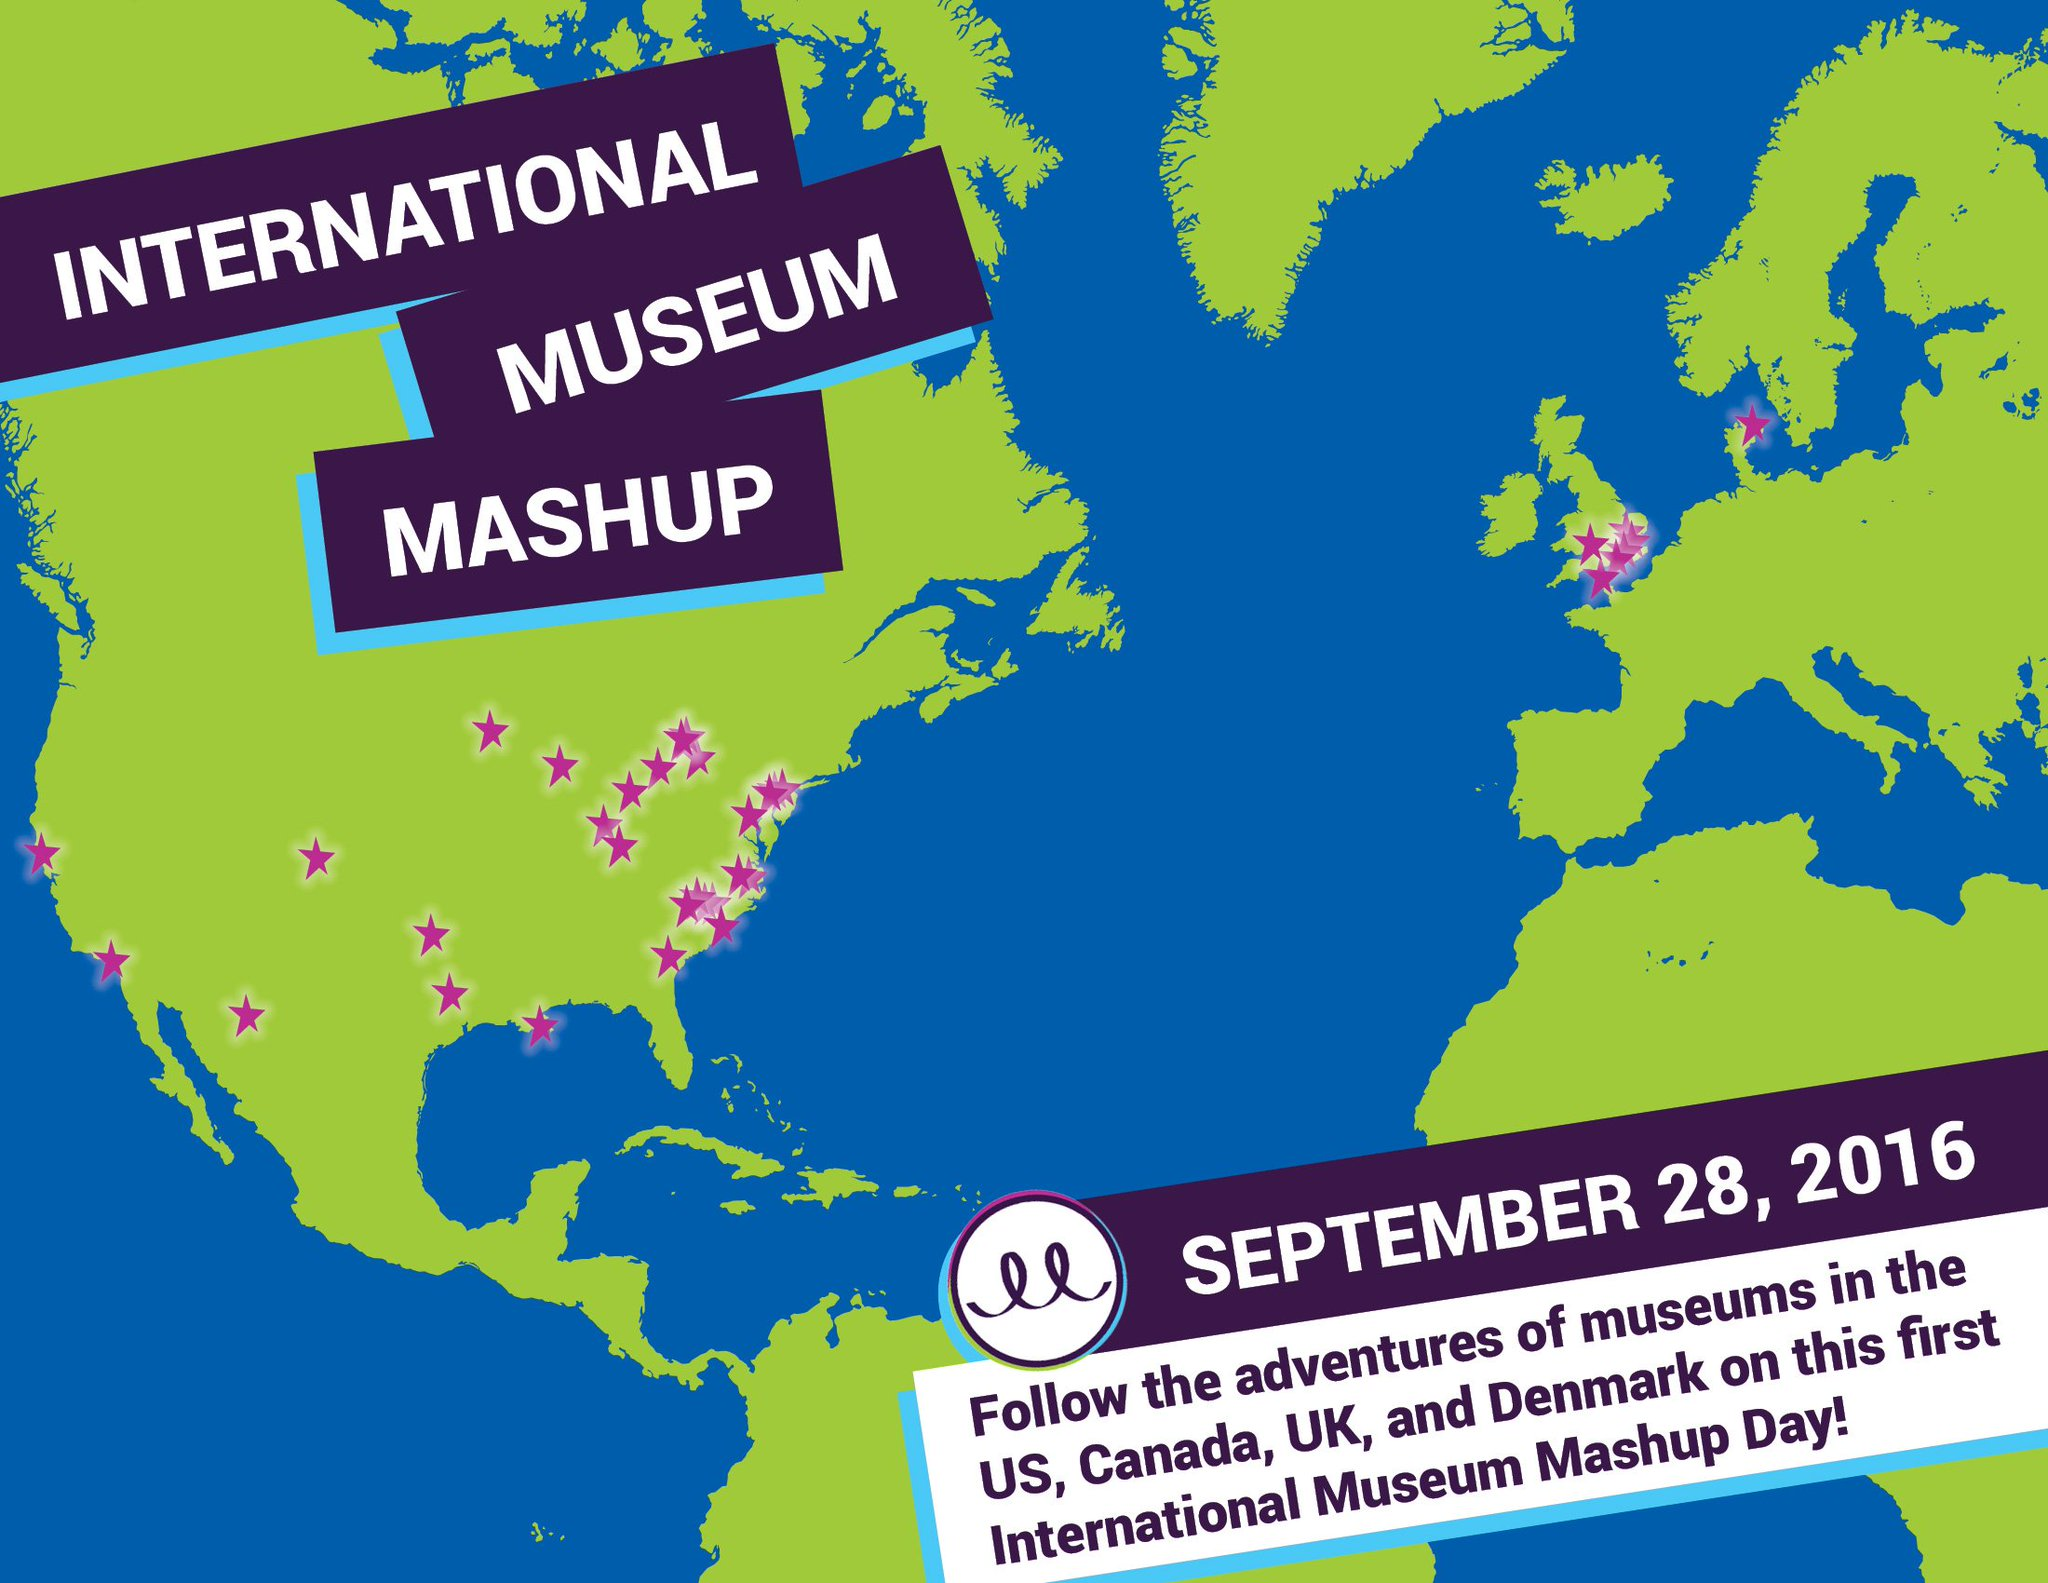 TODAY'S THE DAY! Check out our map of who's participating in the #MuseumMashup! https://t.co/VYuMRV6Wg8 https://t.co/Lsjg6gIoLd